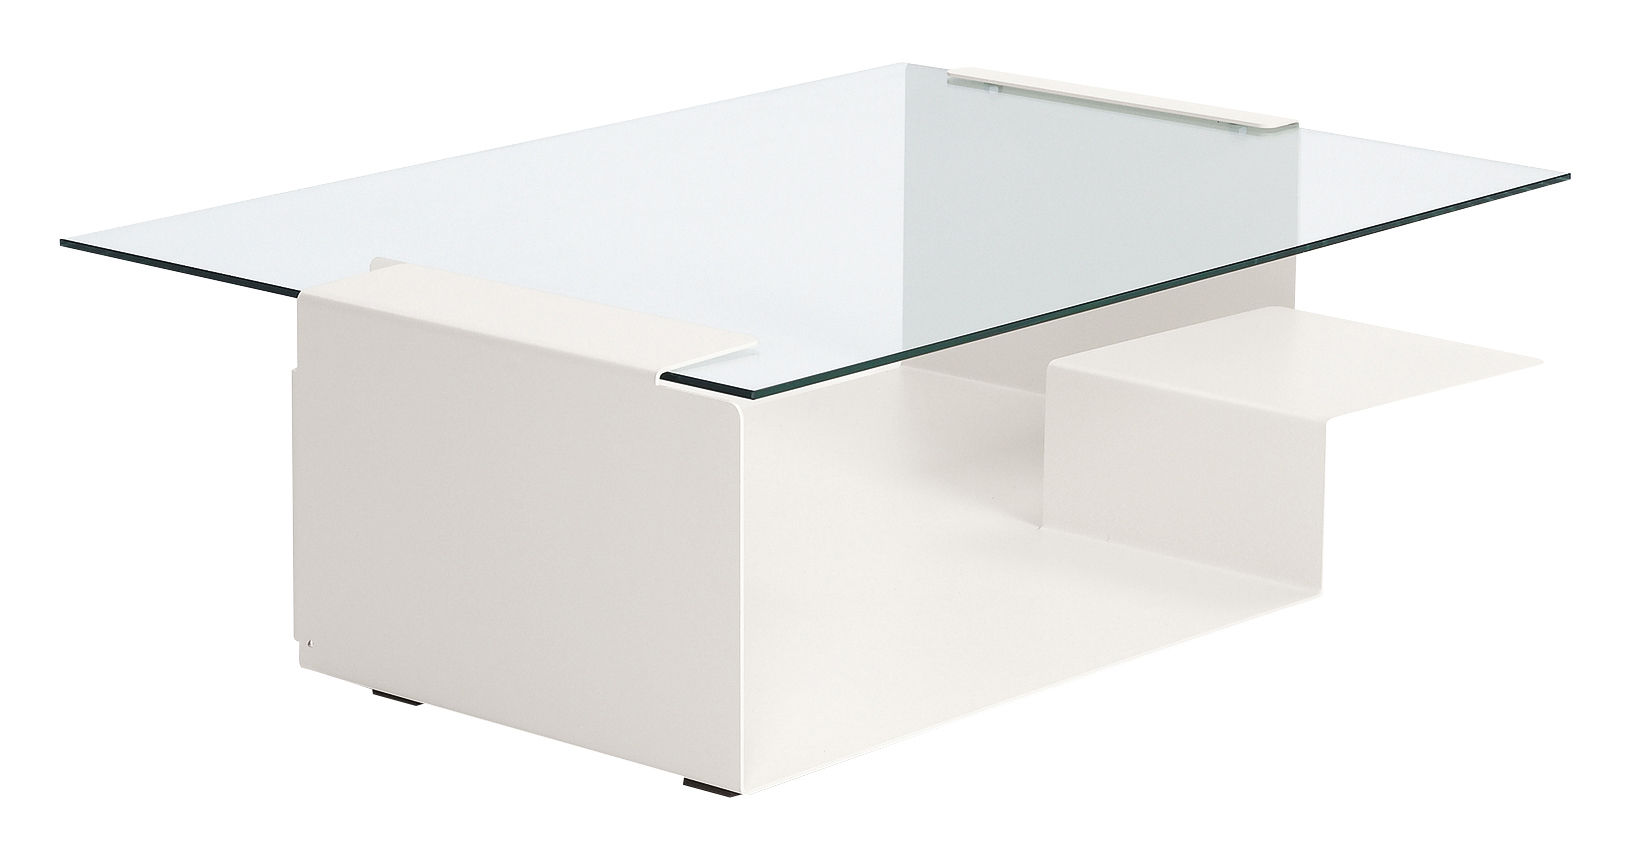 Mobilier - Tables basses - Table basse Diana D - ClassiCon - Blanc - Verre